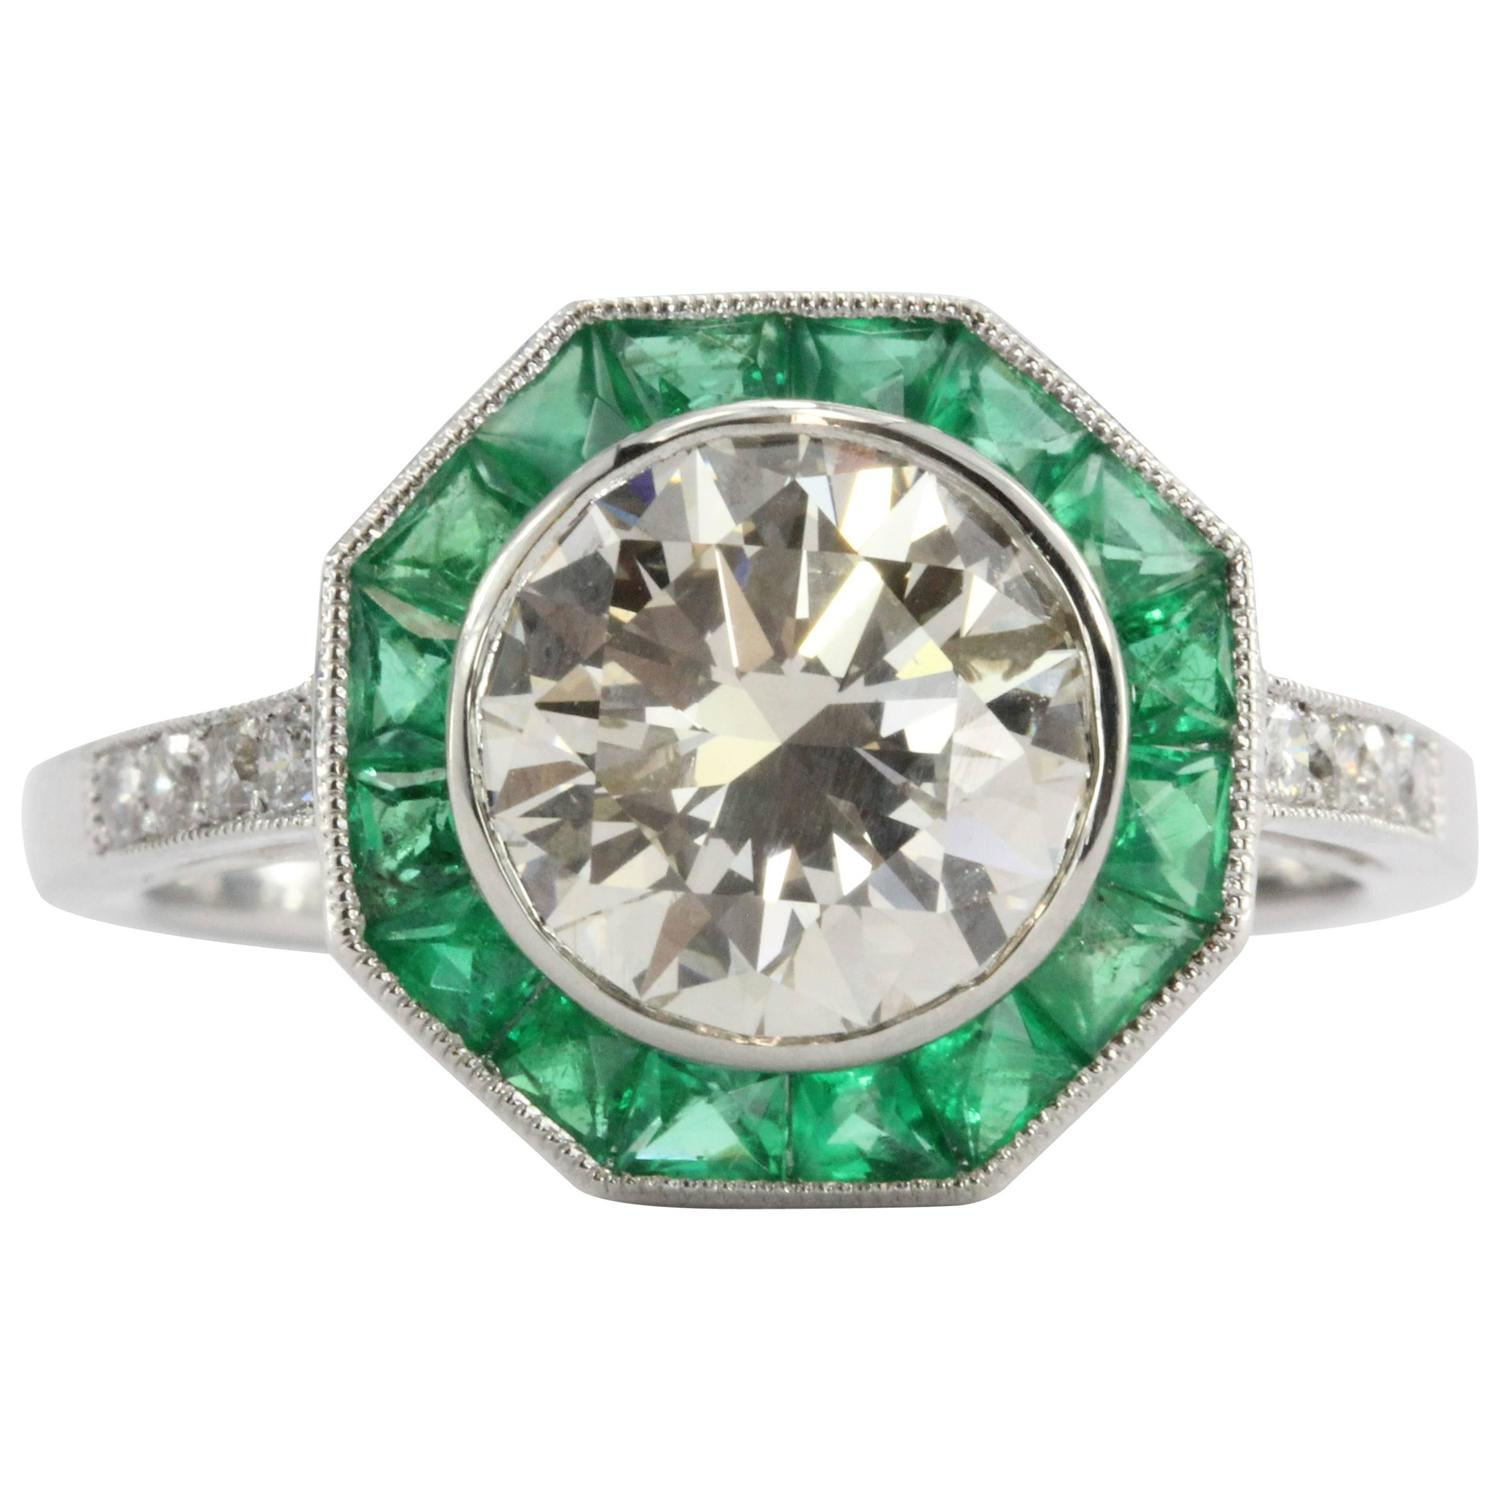 deco style 2 1 carat emerald platinum d engagement ring for sale at 1stdibs